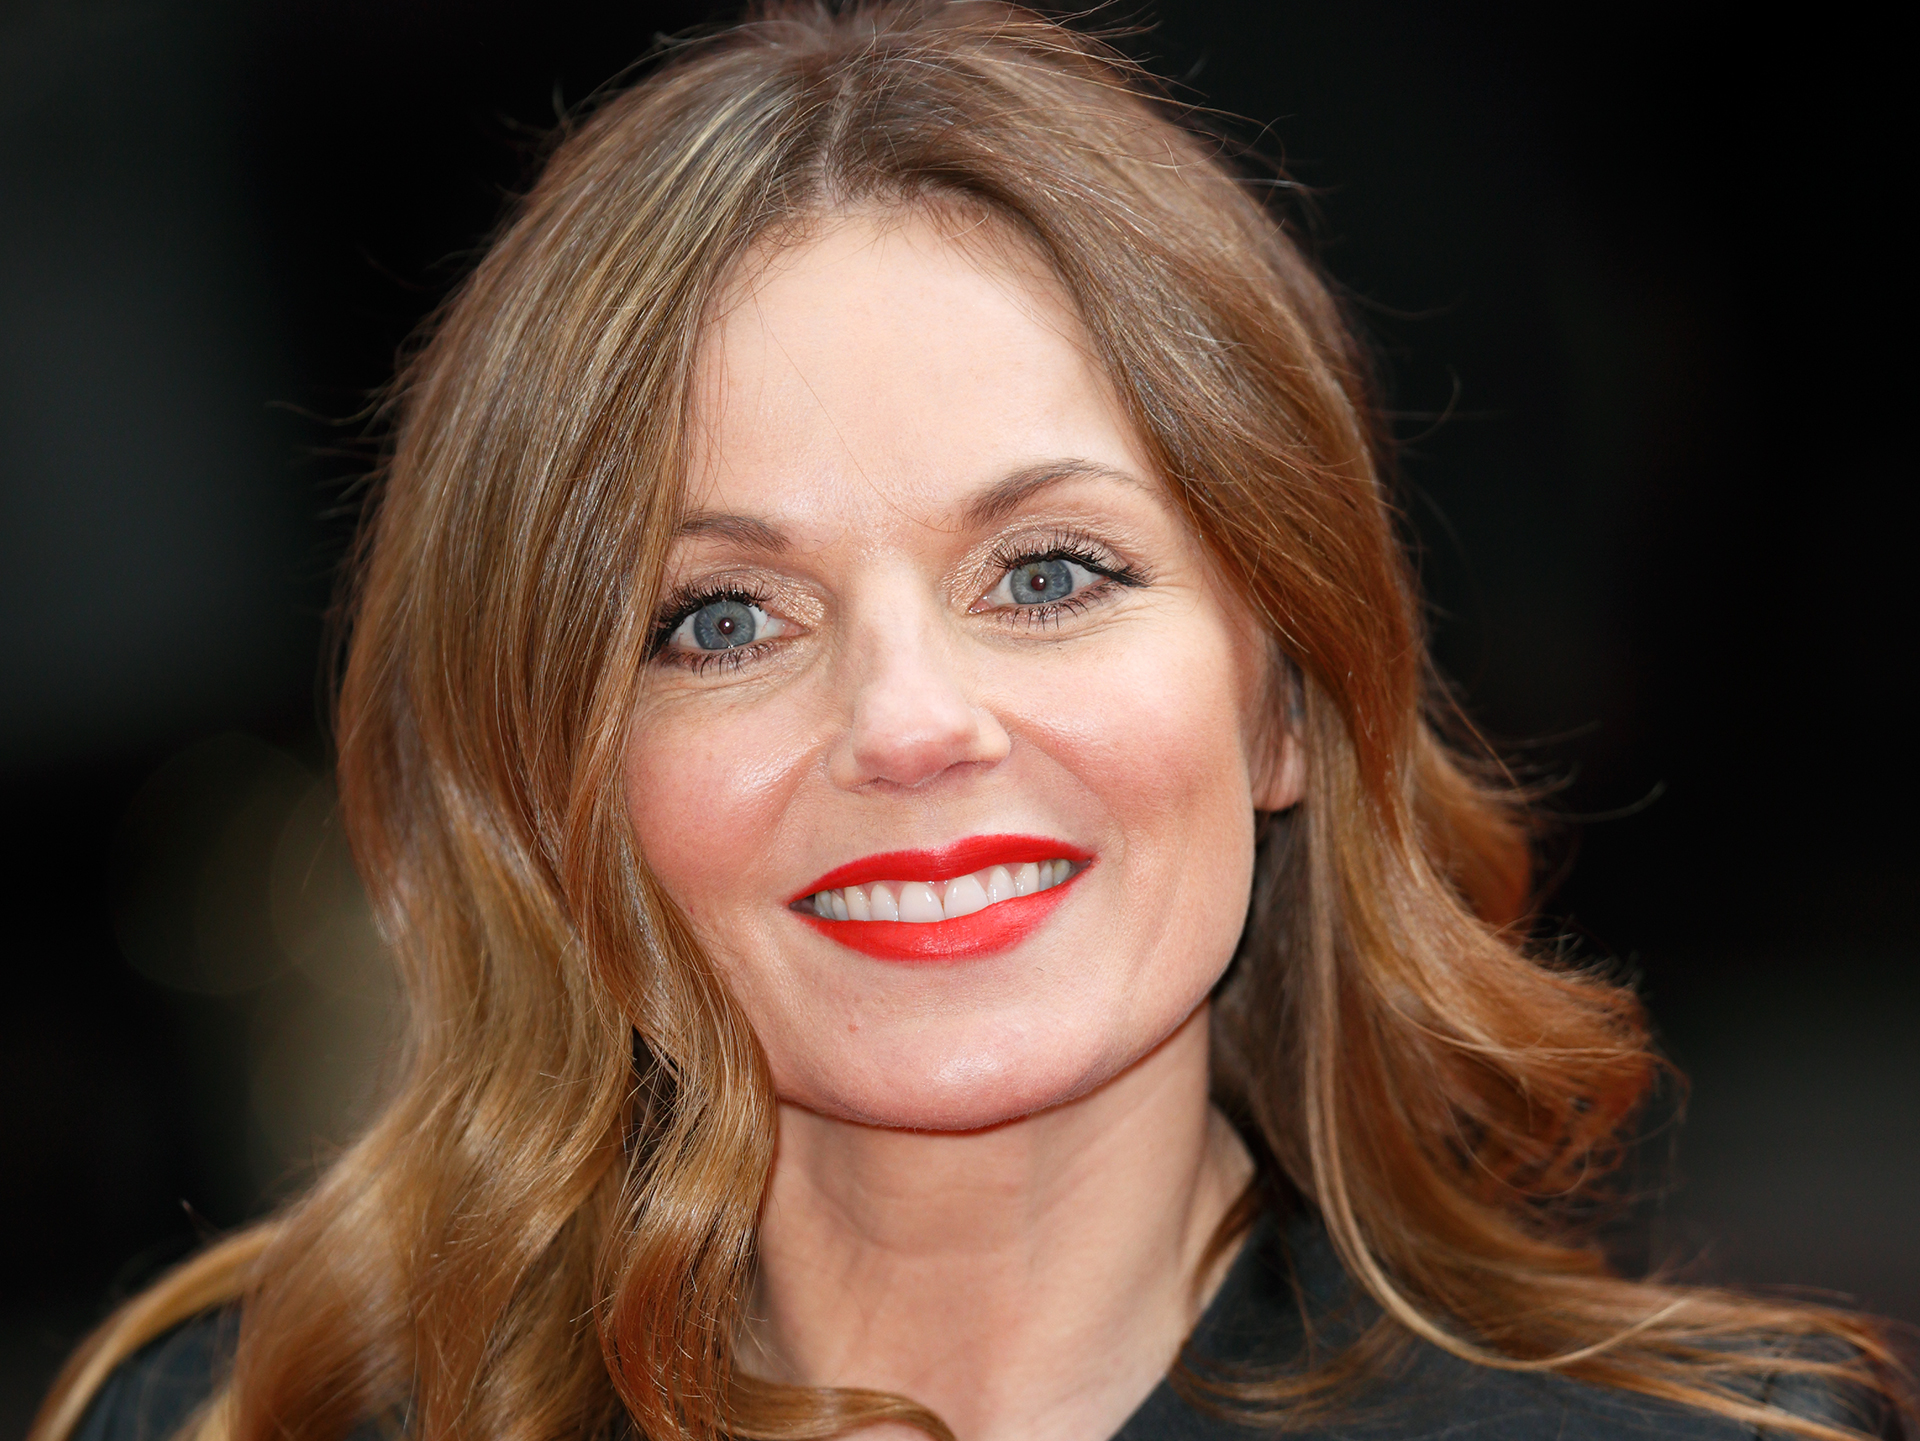 Geri Halliwell Gives Birth: Spice Girl Welcomes Second Child With Husband - Congrats